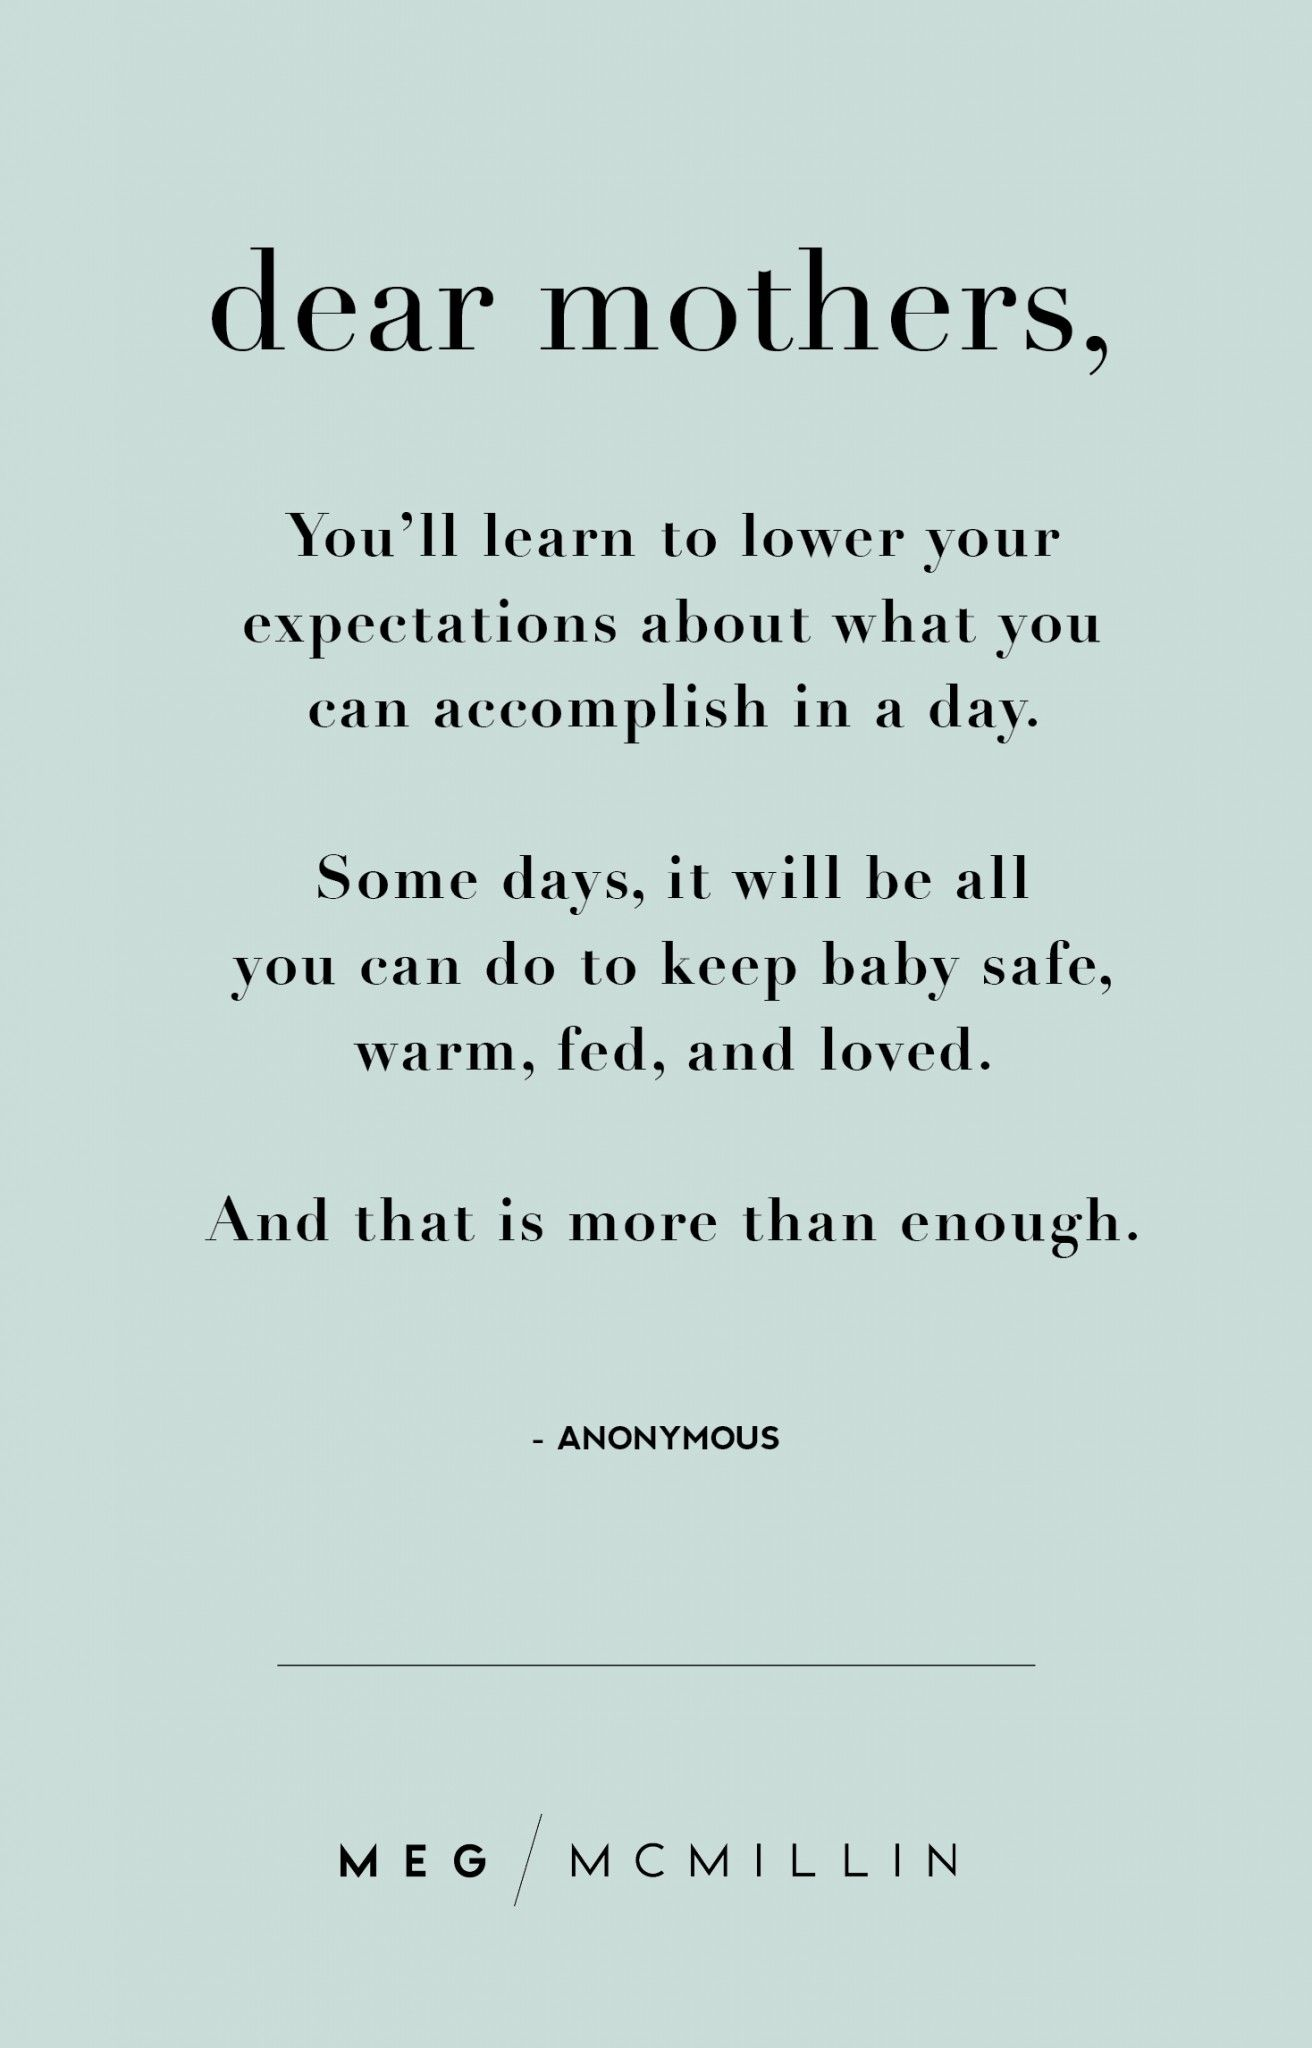 10 Inspiring Mom Quotes To Get You Through A Tough Day Meg Mcmillin Mom Life Quotes Inspirational Quotes For Moms Mom Quotes